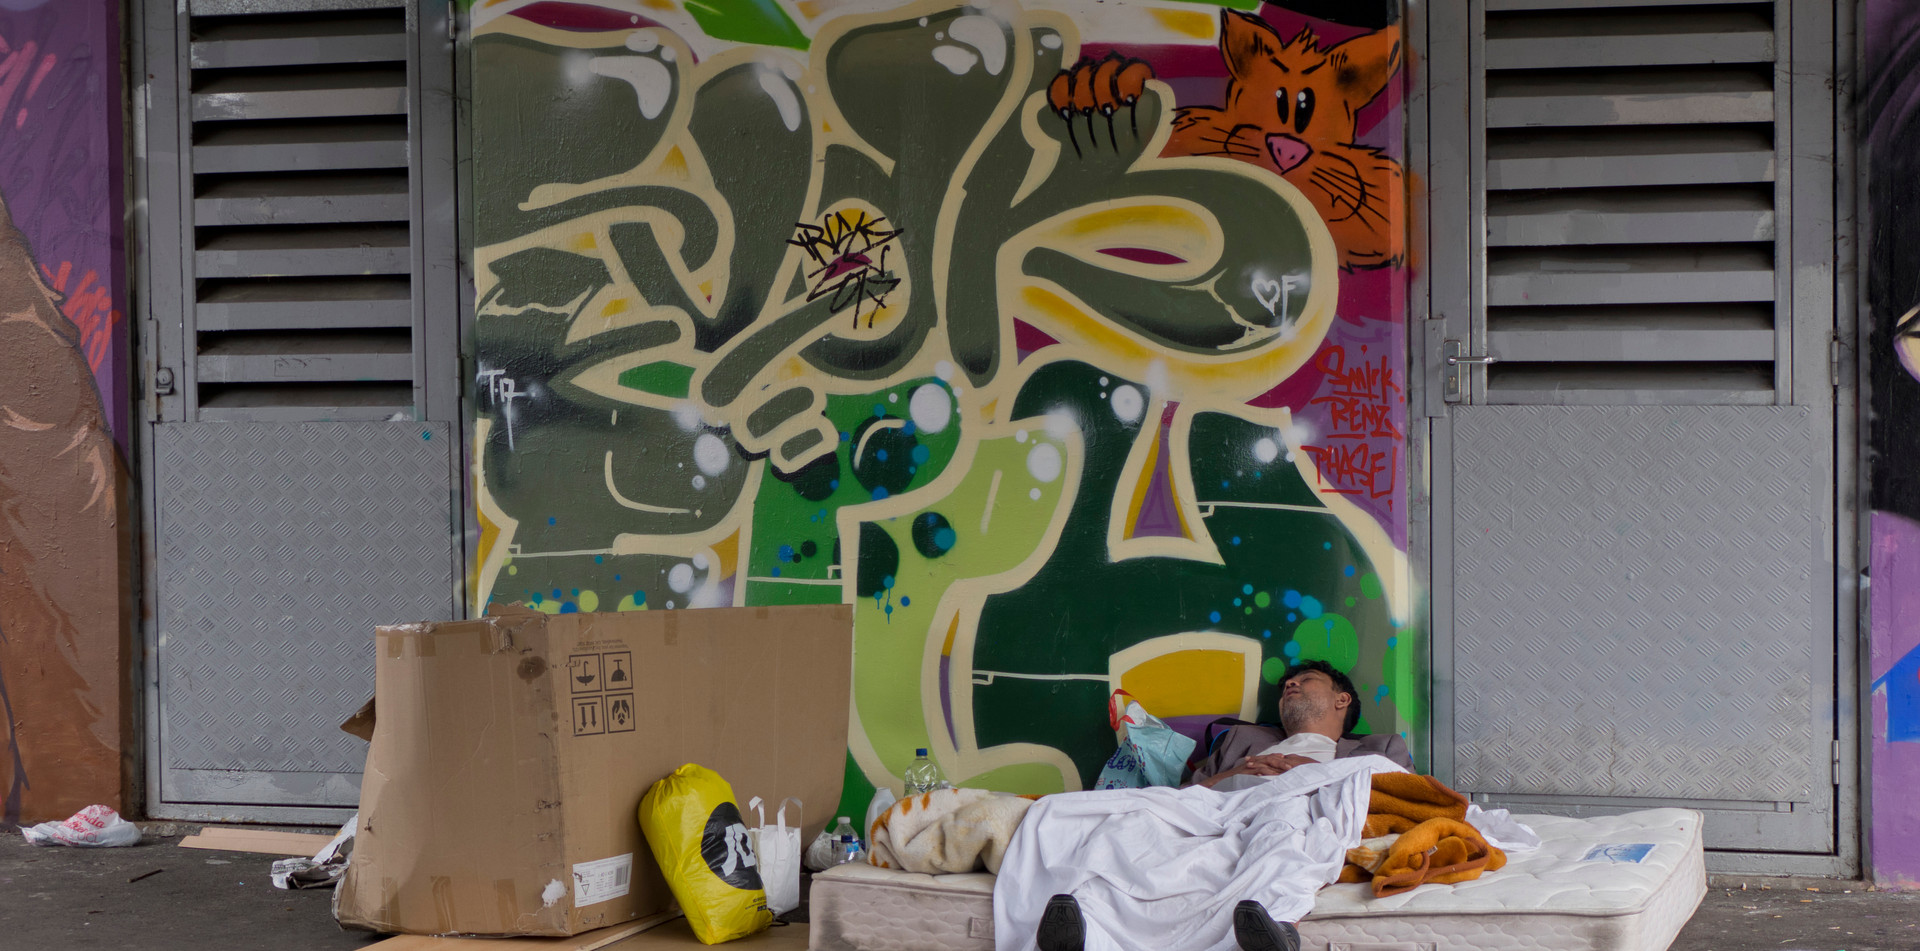 Young homeless man sleeping under railway bridge with graffiti art in London